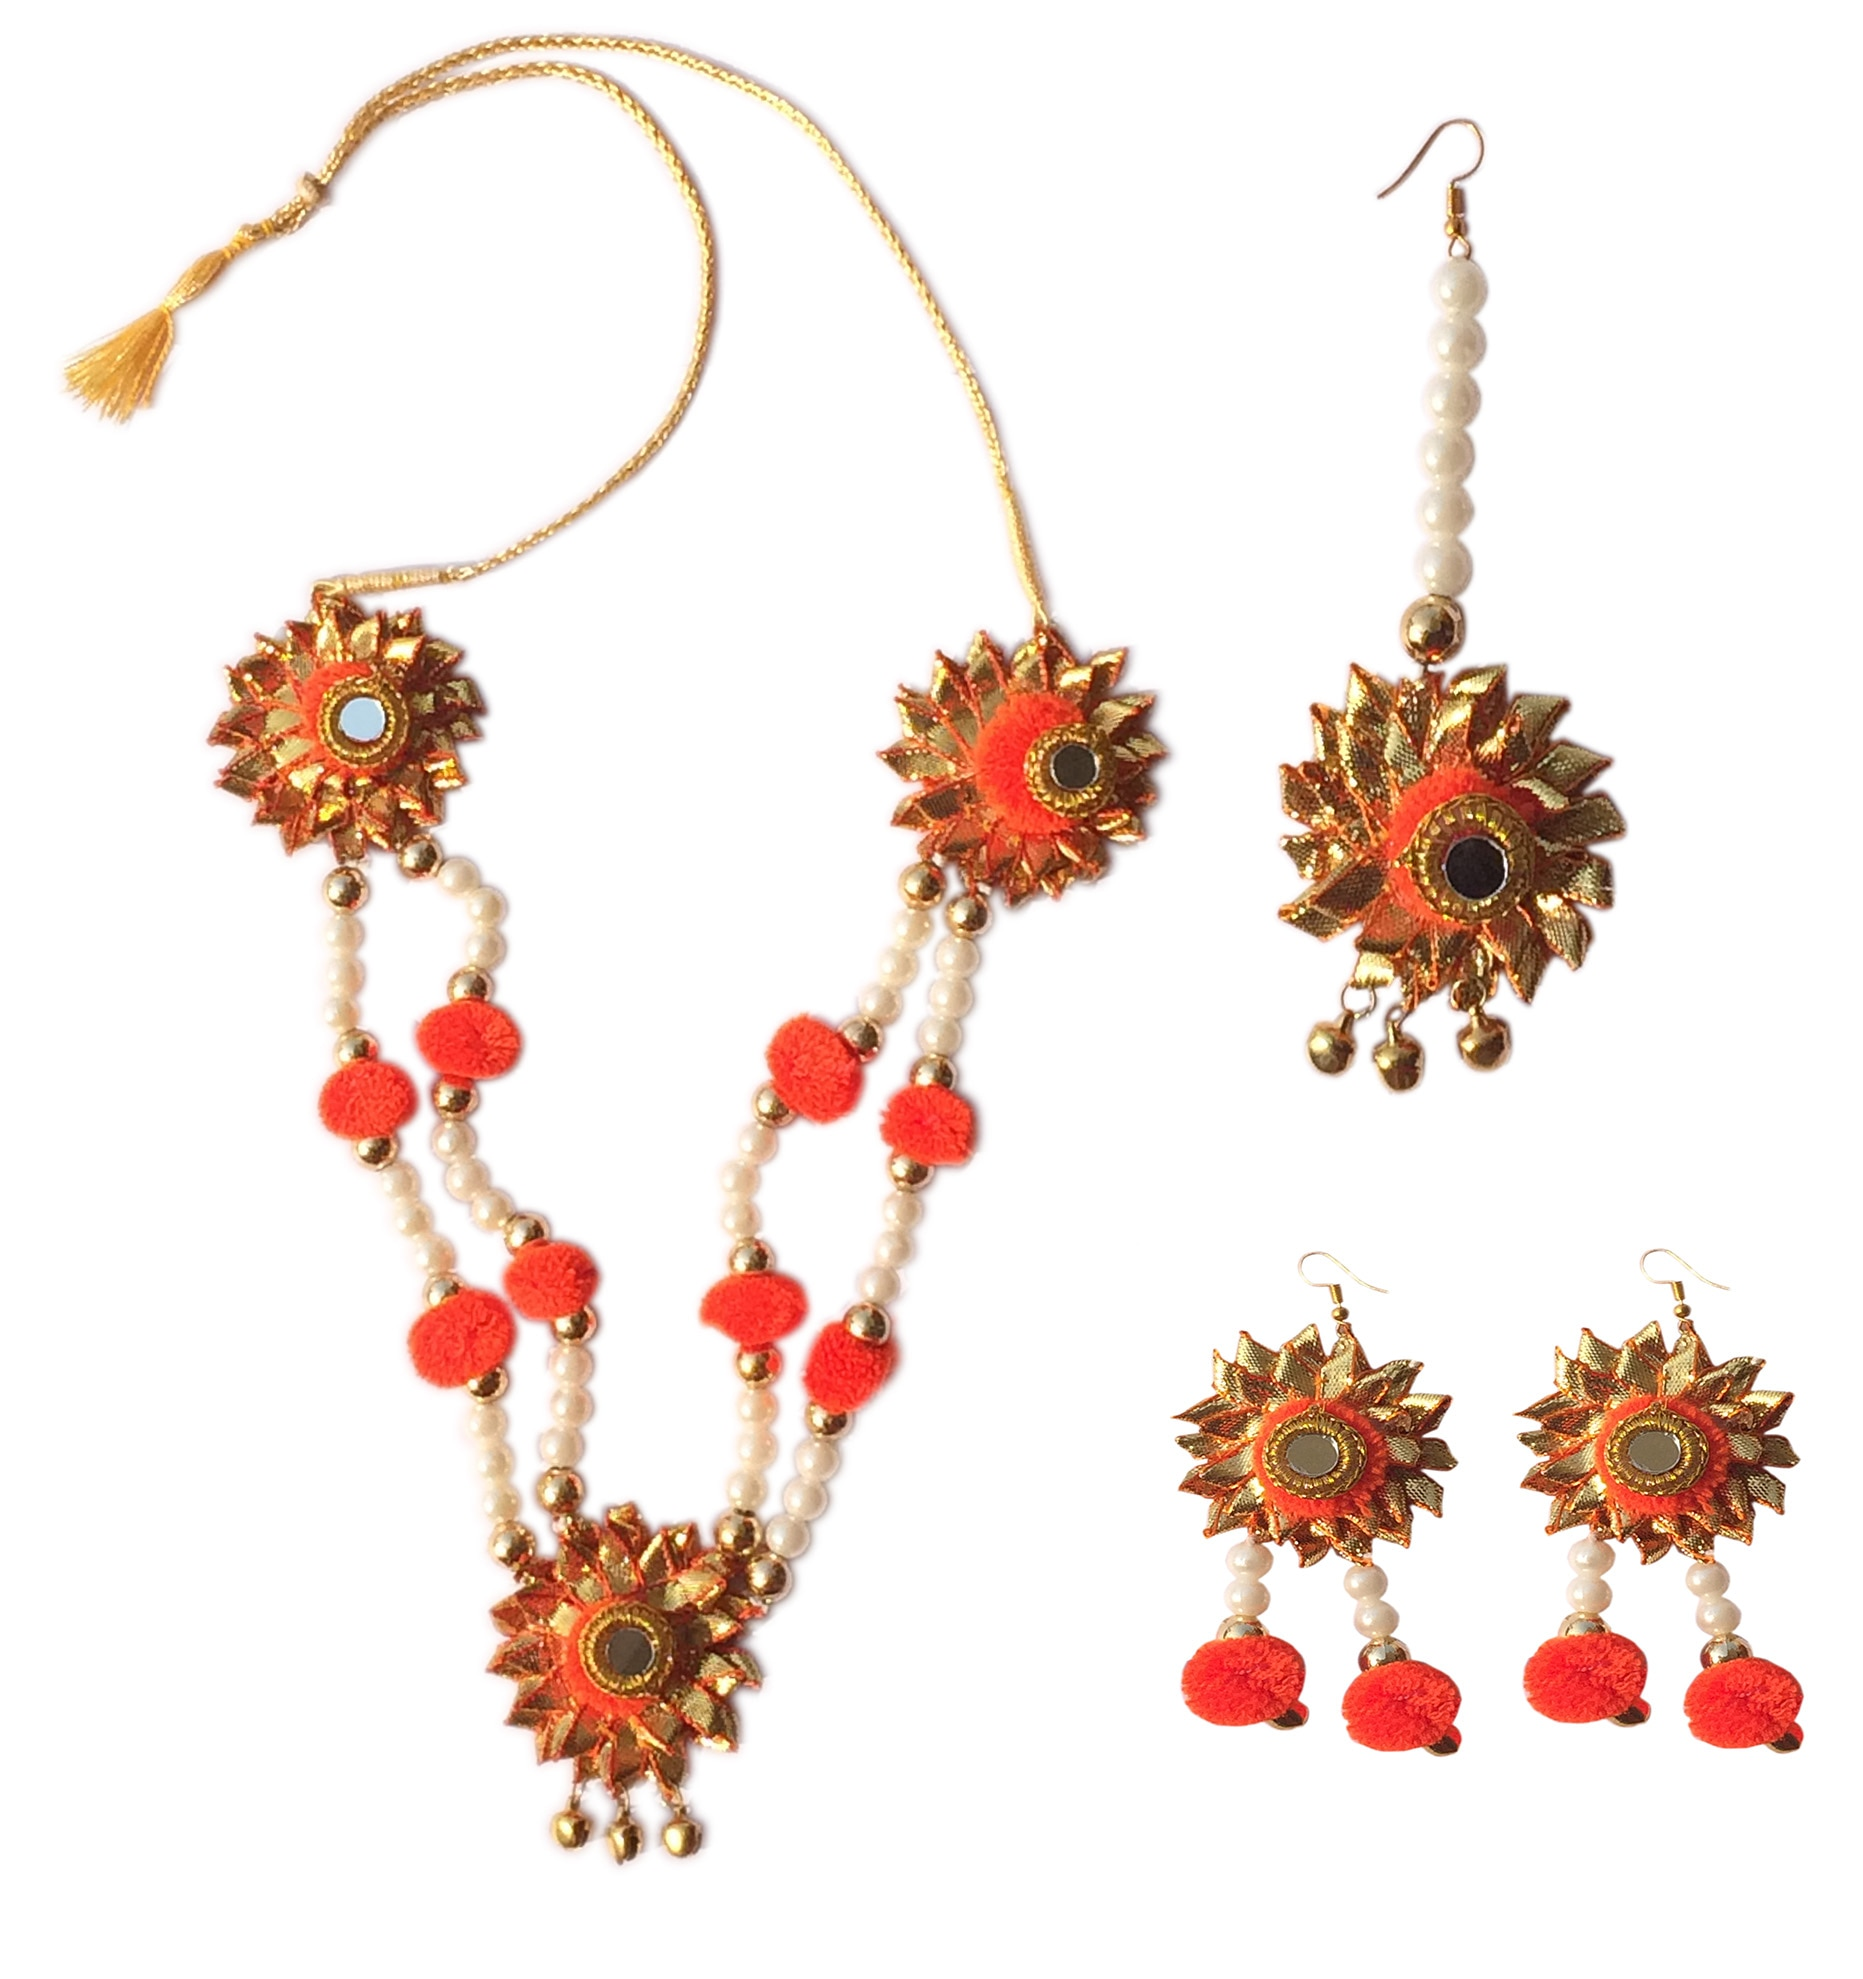 Gotta Patti Full Set {(1) Gotta patti Necklace (2) Gotta patti Ear Ring (3) )Mang Tikka }  Occasion: Mehendi, Pre-Wedding Pooja, Wedding Day.  Light weight jewellery  Images Shown of actual product . There may be slight variation in the color & texture being hand crafted , & due to photographic effect.All items must be sold/purchased /returned altogether.